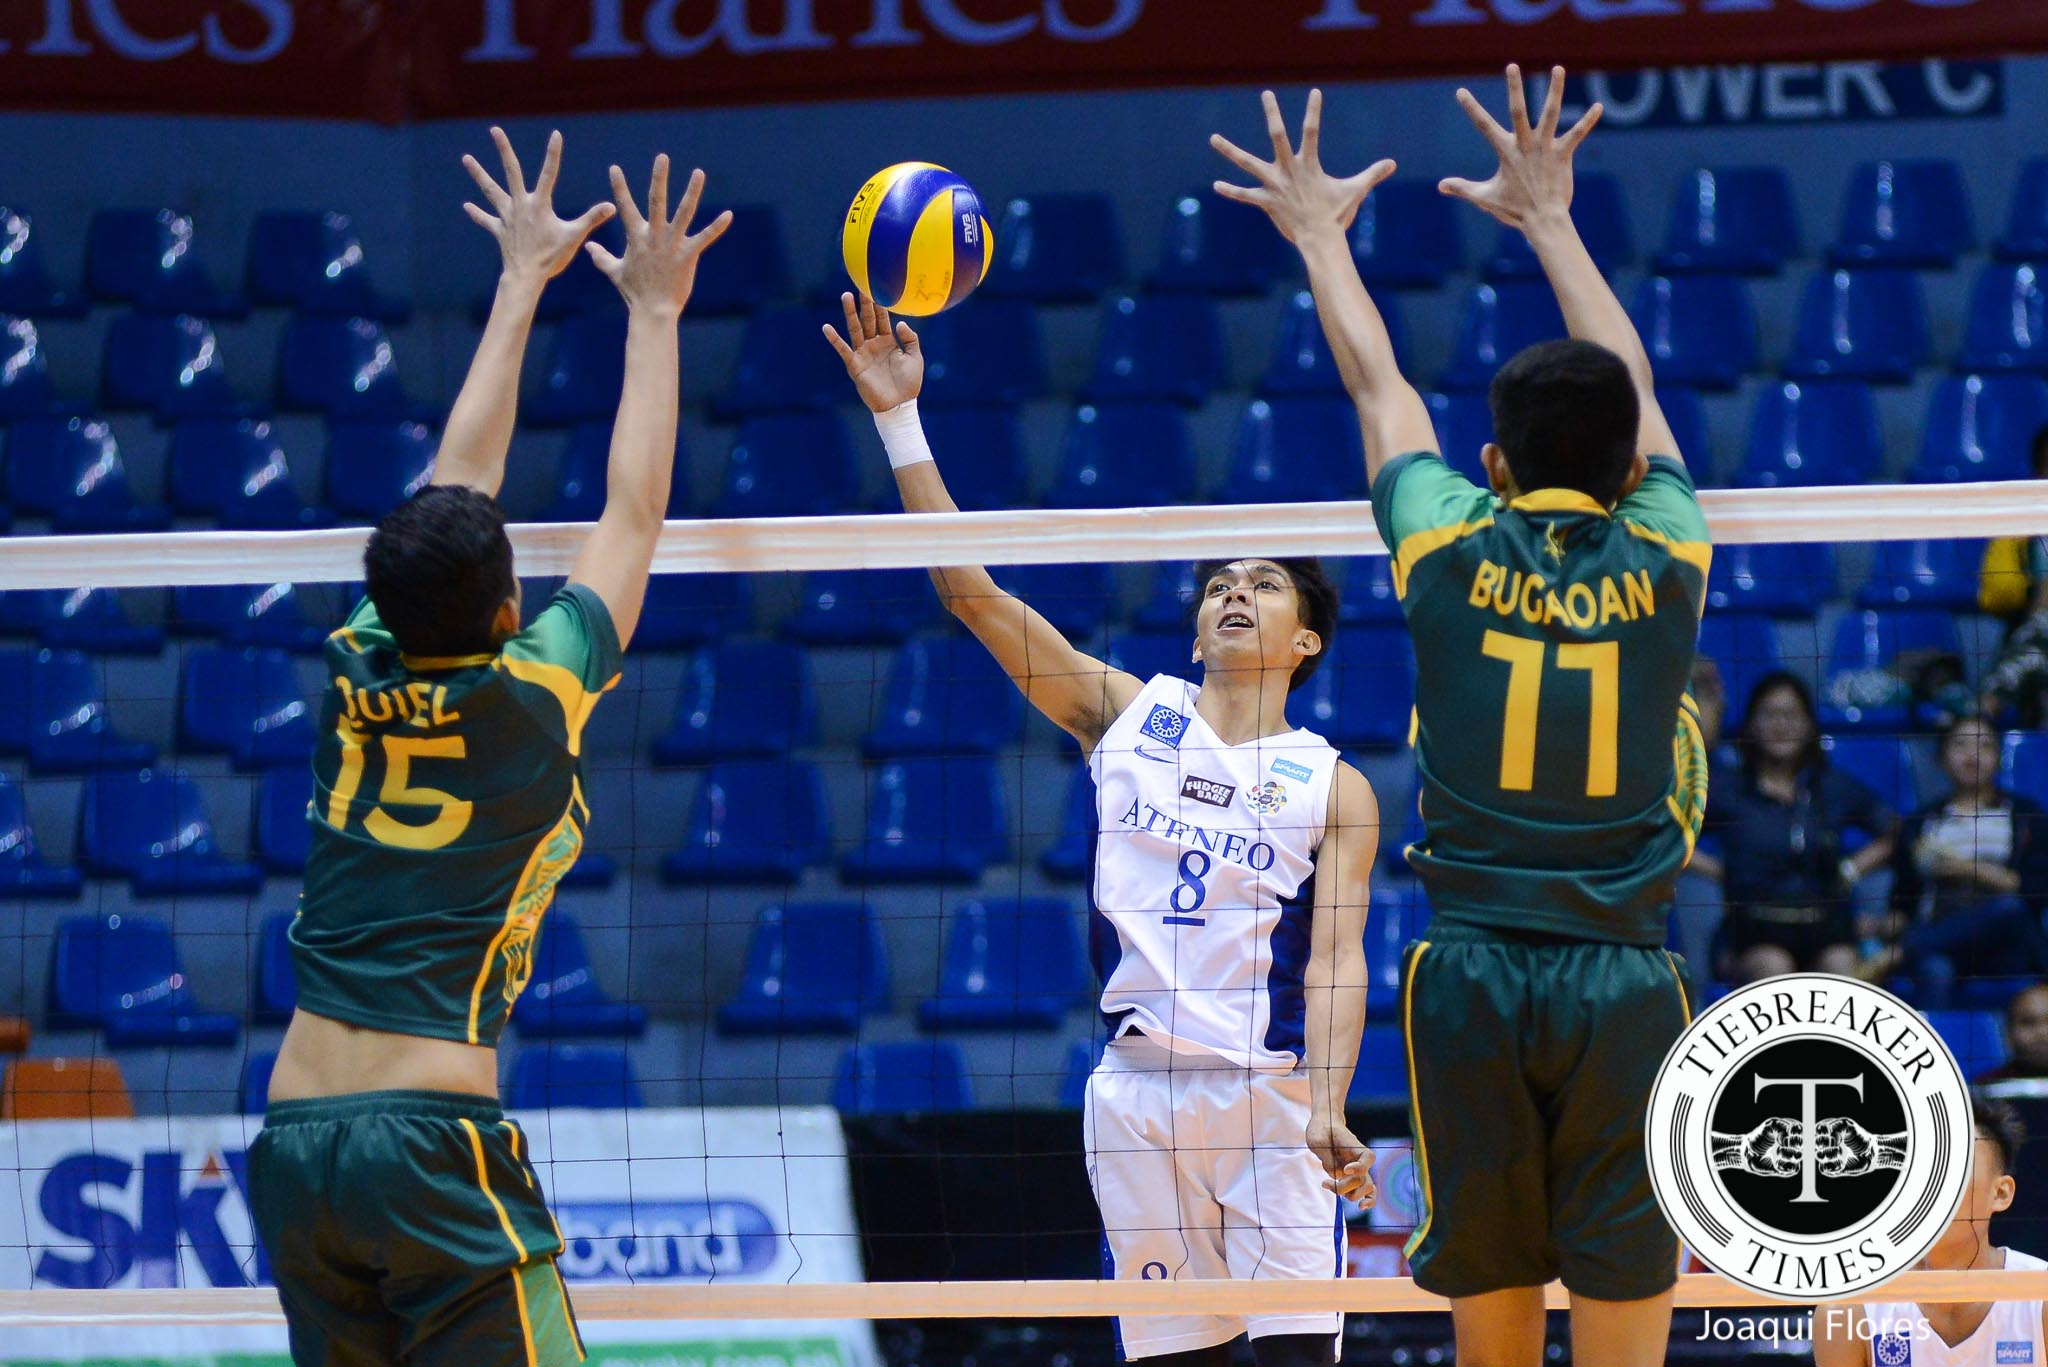 Tiebreaker Times Team effort pulls Ateneo past boisterous FEU squad ADMU FEU News UAAP Volleyball  Ysay Marasigan UAAP Season 78 Men's Volleyball UAAP Season 78 Reynaldo Diaz Oliver Almadro Marck Espejo Jude Garcia Josh Villanueva Jeric Gacutan Greg Dolor FEU Men's Volleyball Ateneo Men's Volleyball